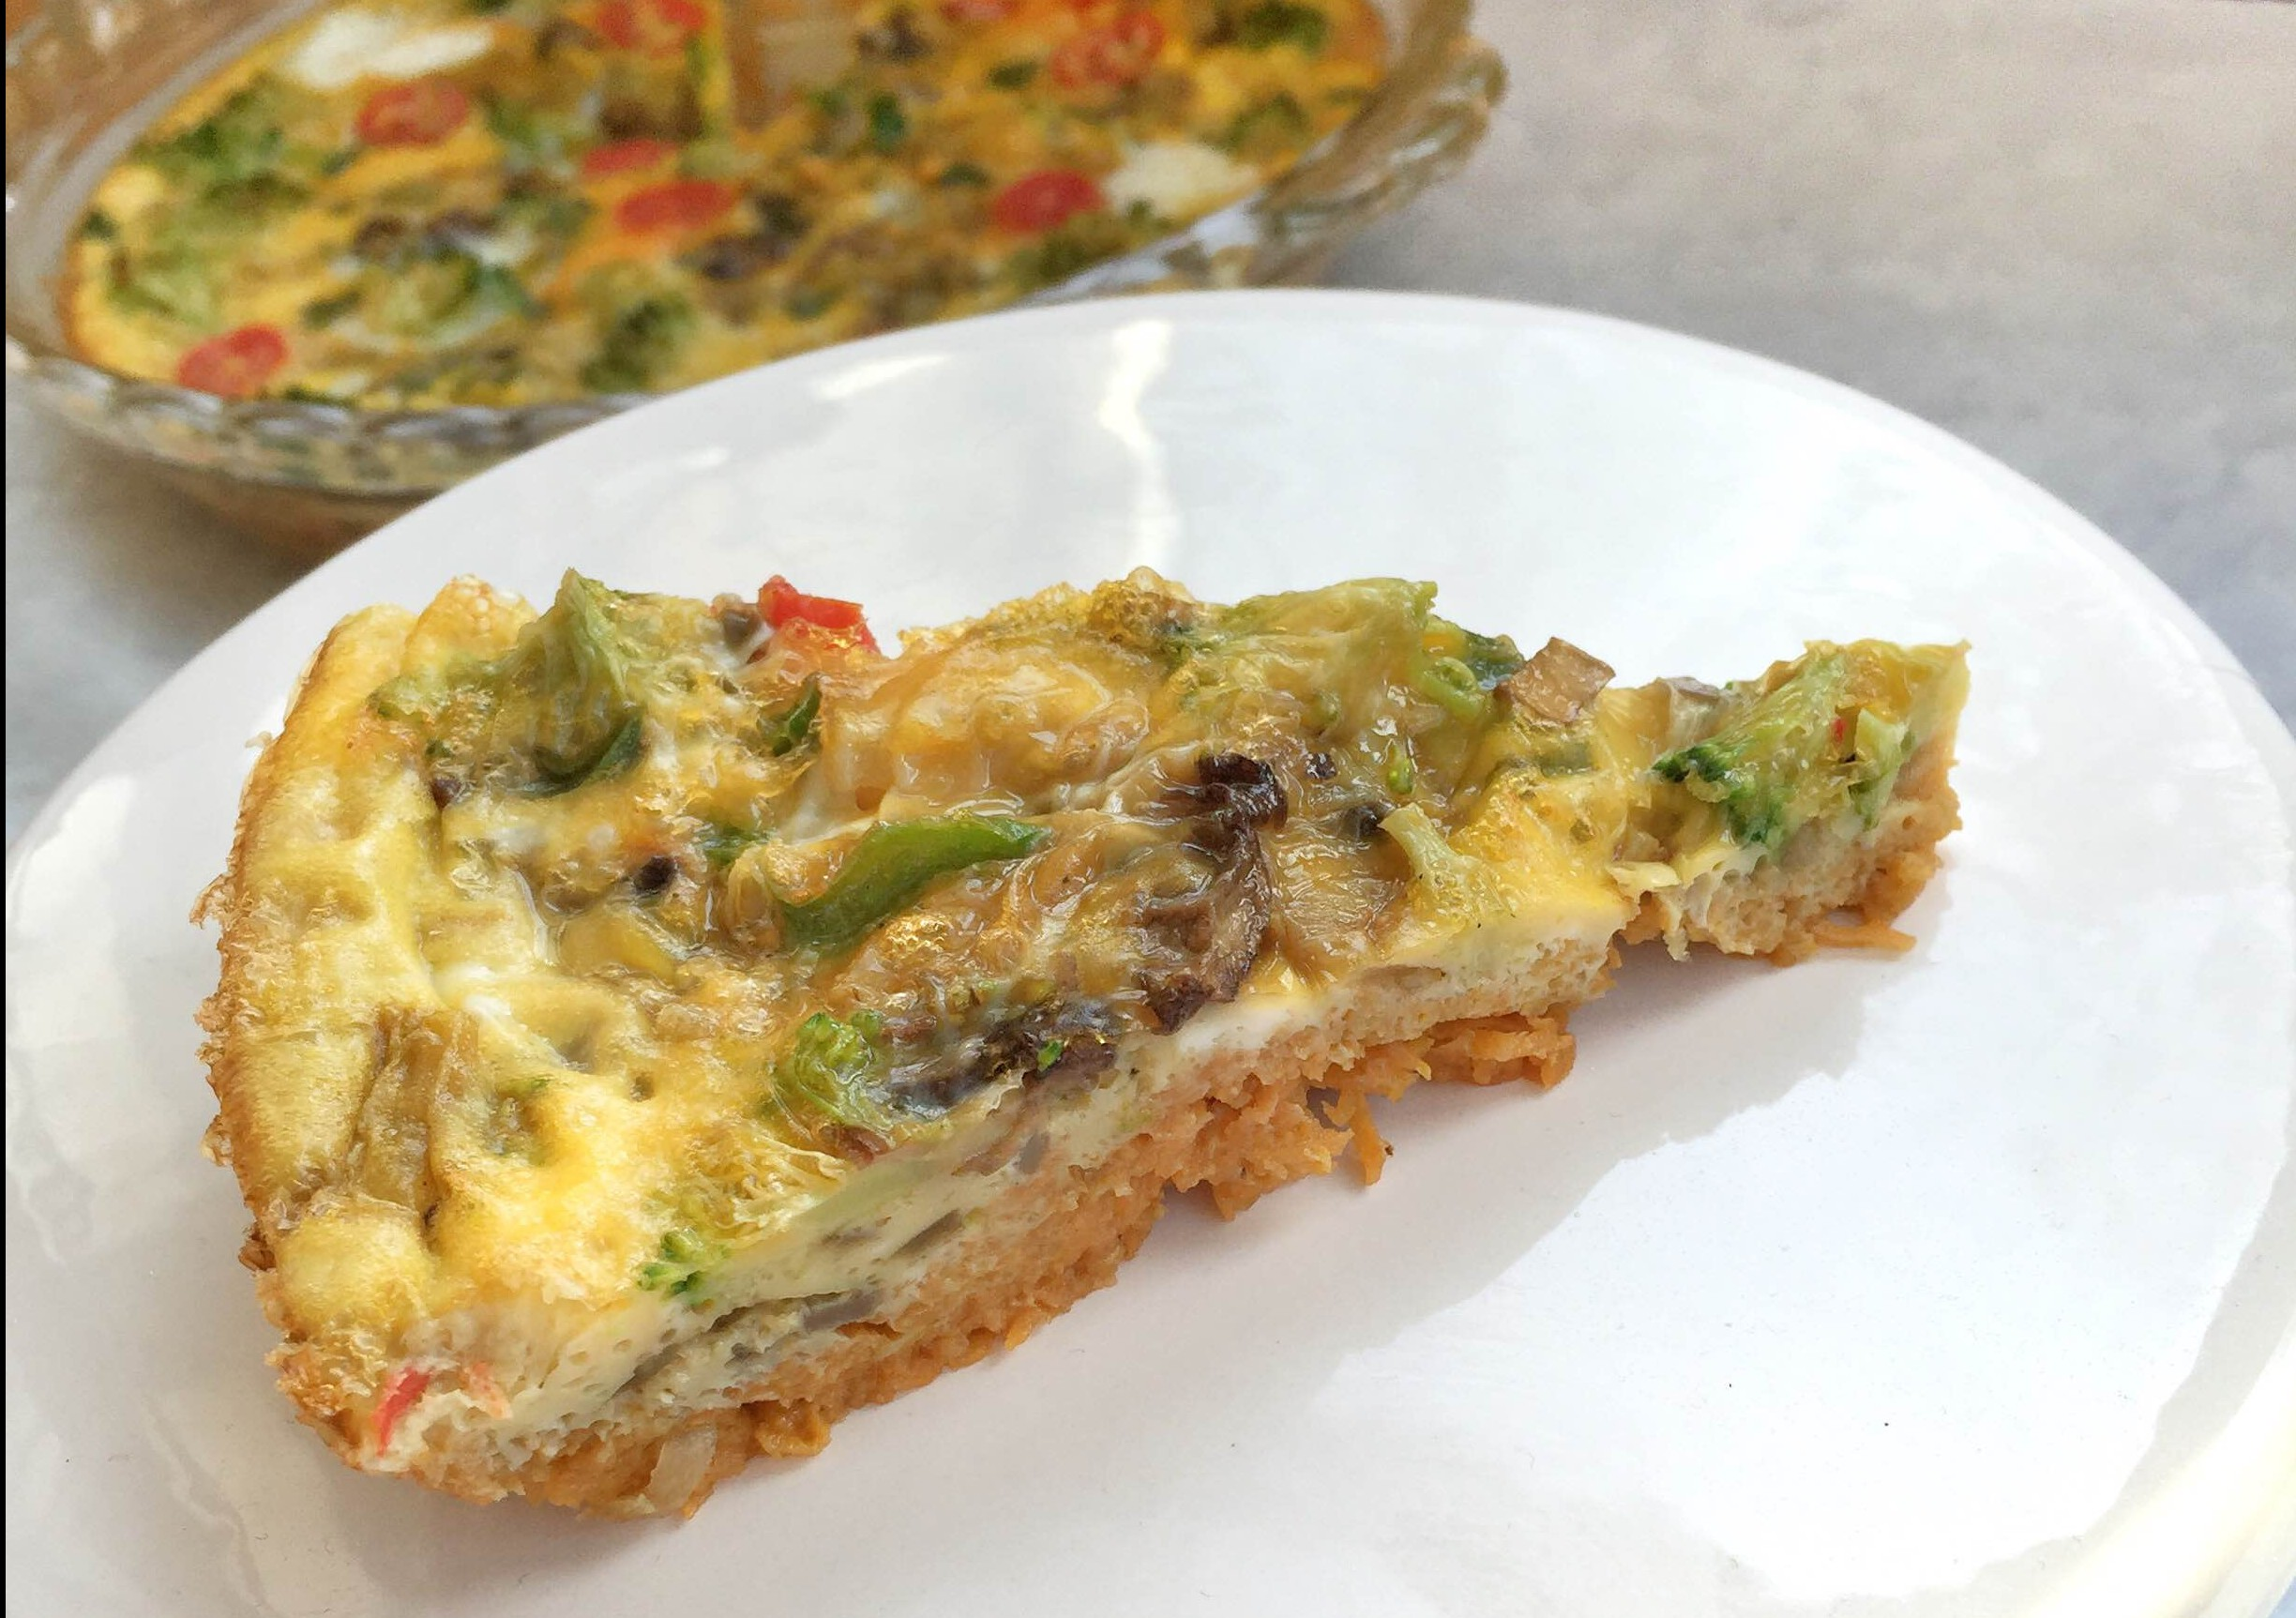 Egg & veggie breakfast pie | Make ahead breakfast ideas | Healthy high protein breakfast recipe | GinaKirk.com @ginaekirk